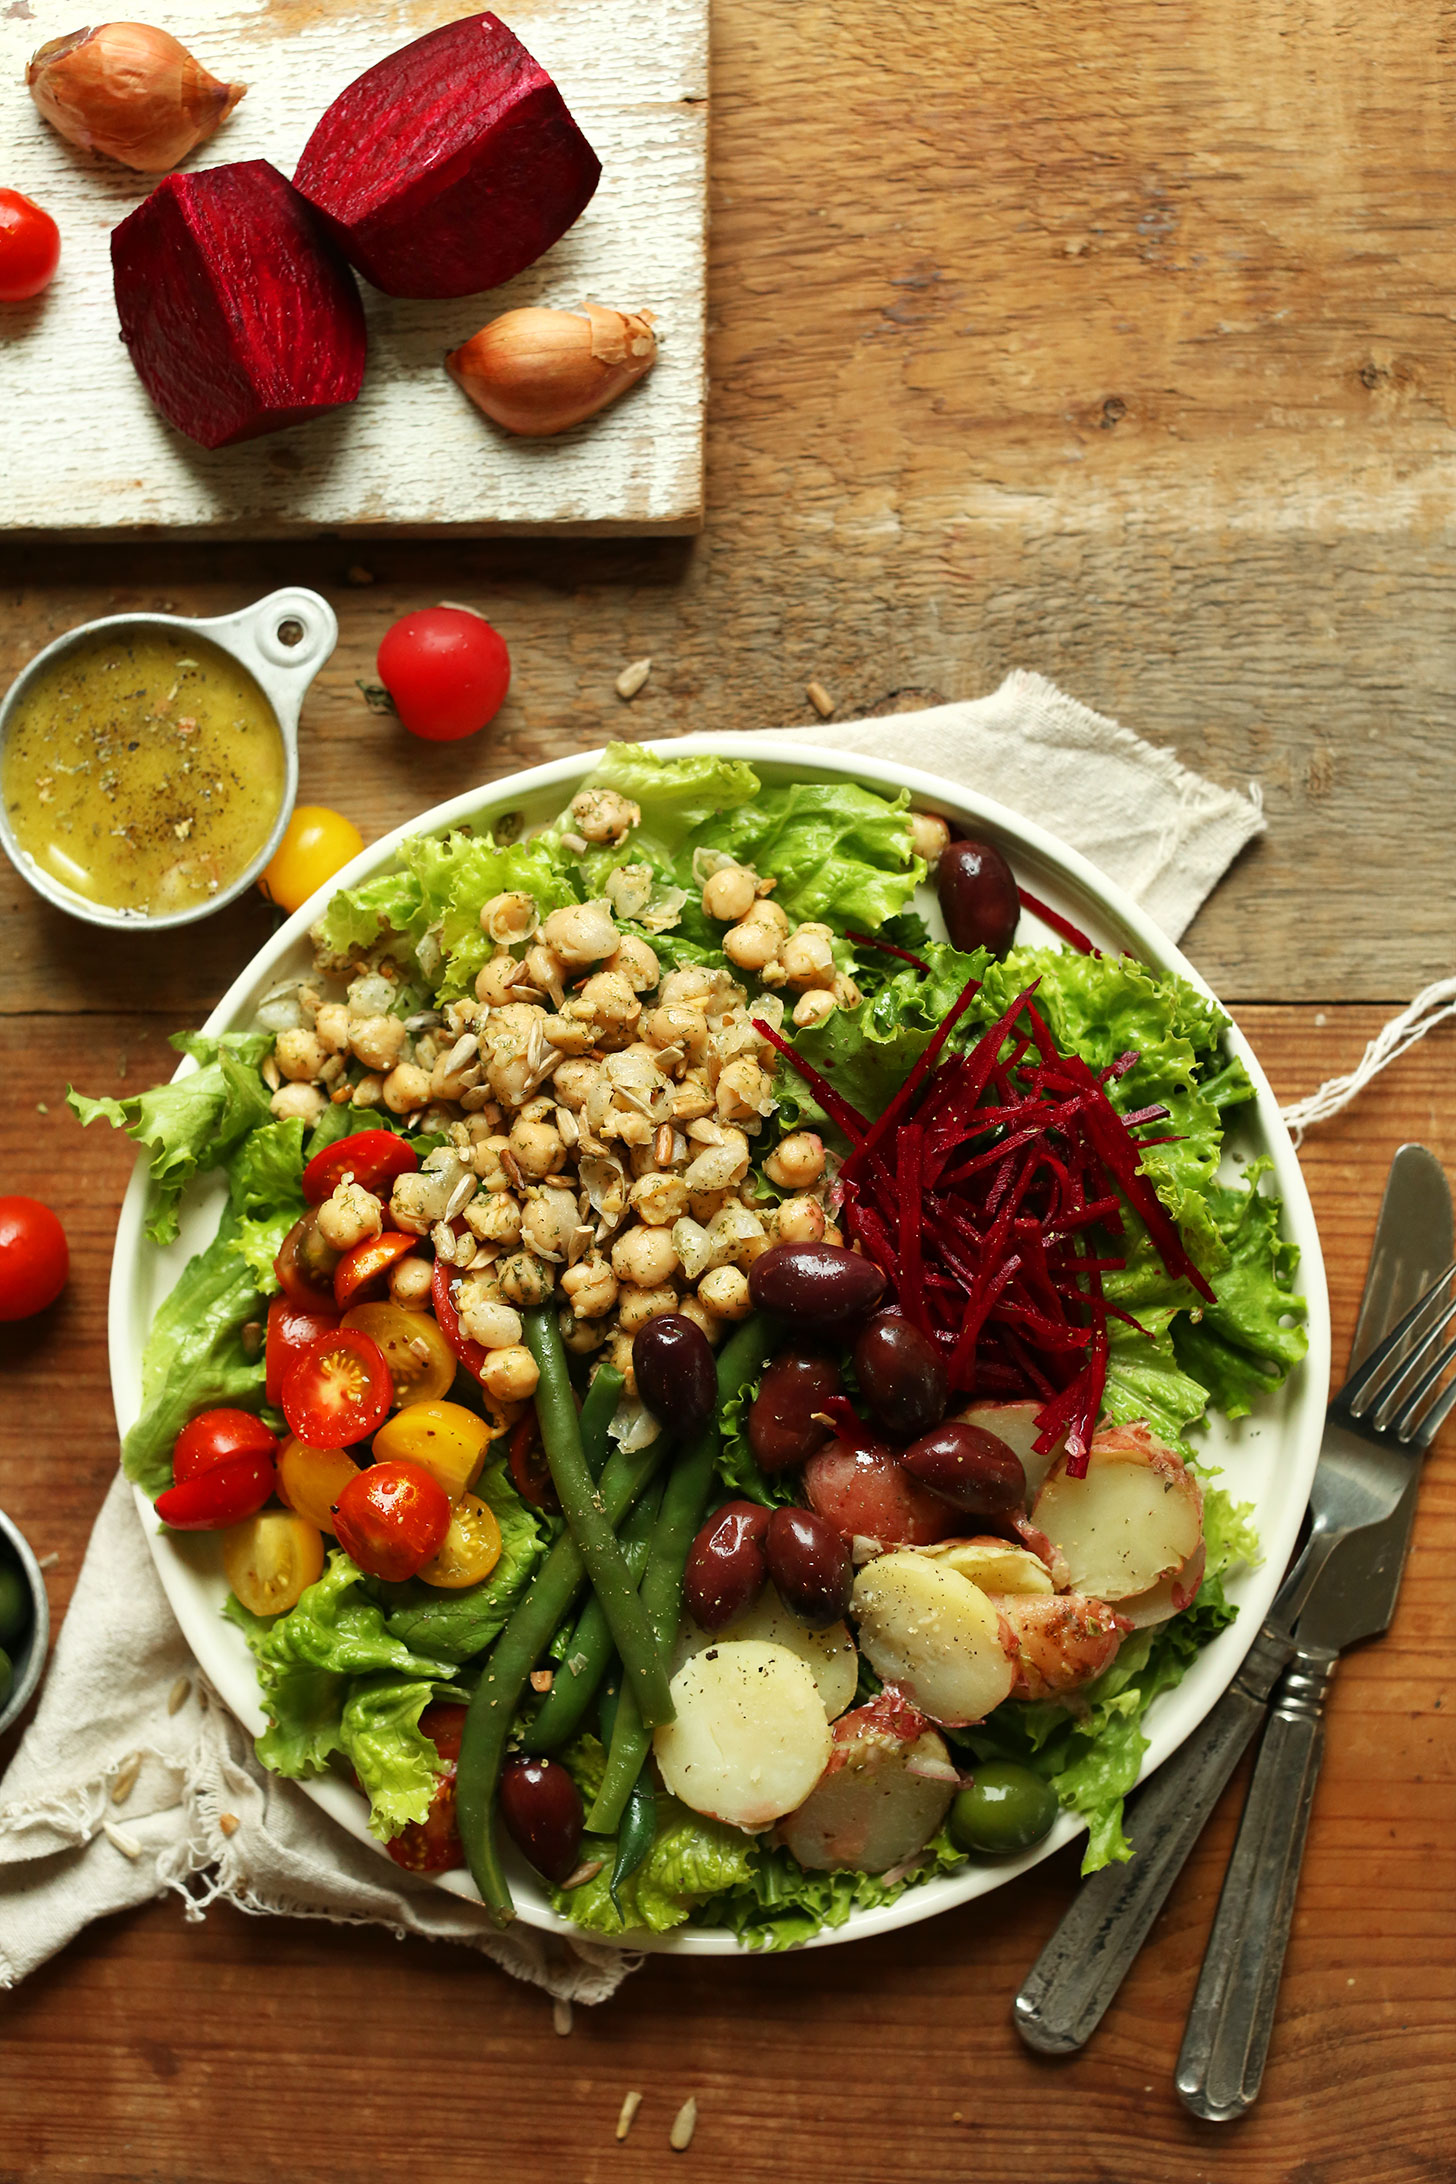 Big Vegan Nicoise Salad with lettuce, shredded beets, olives, green beans, potatoes, tomatoes, chickpeas, and dressing